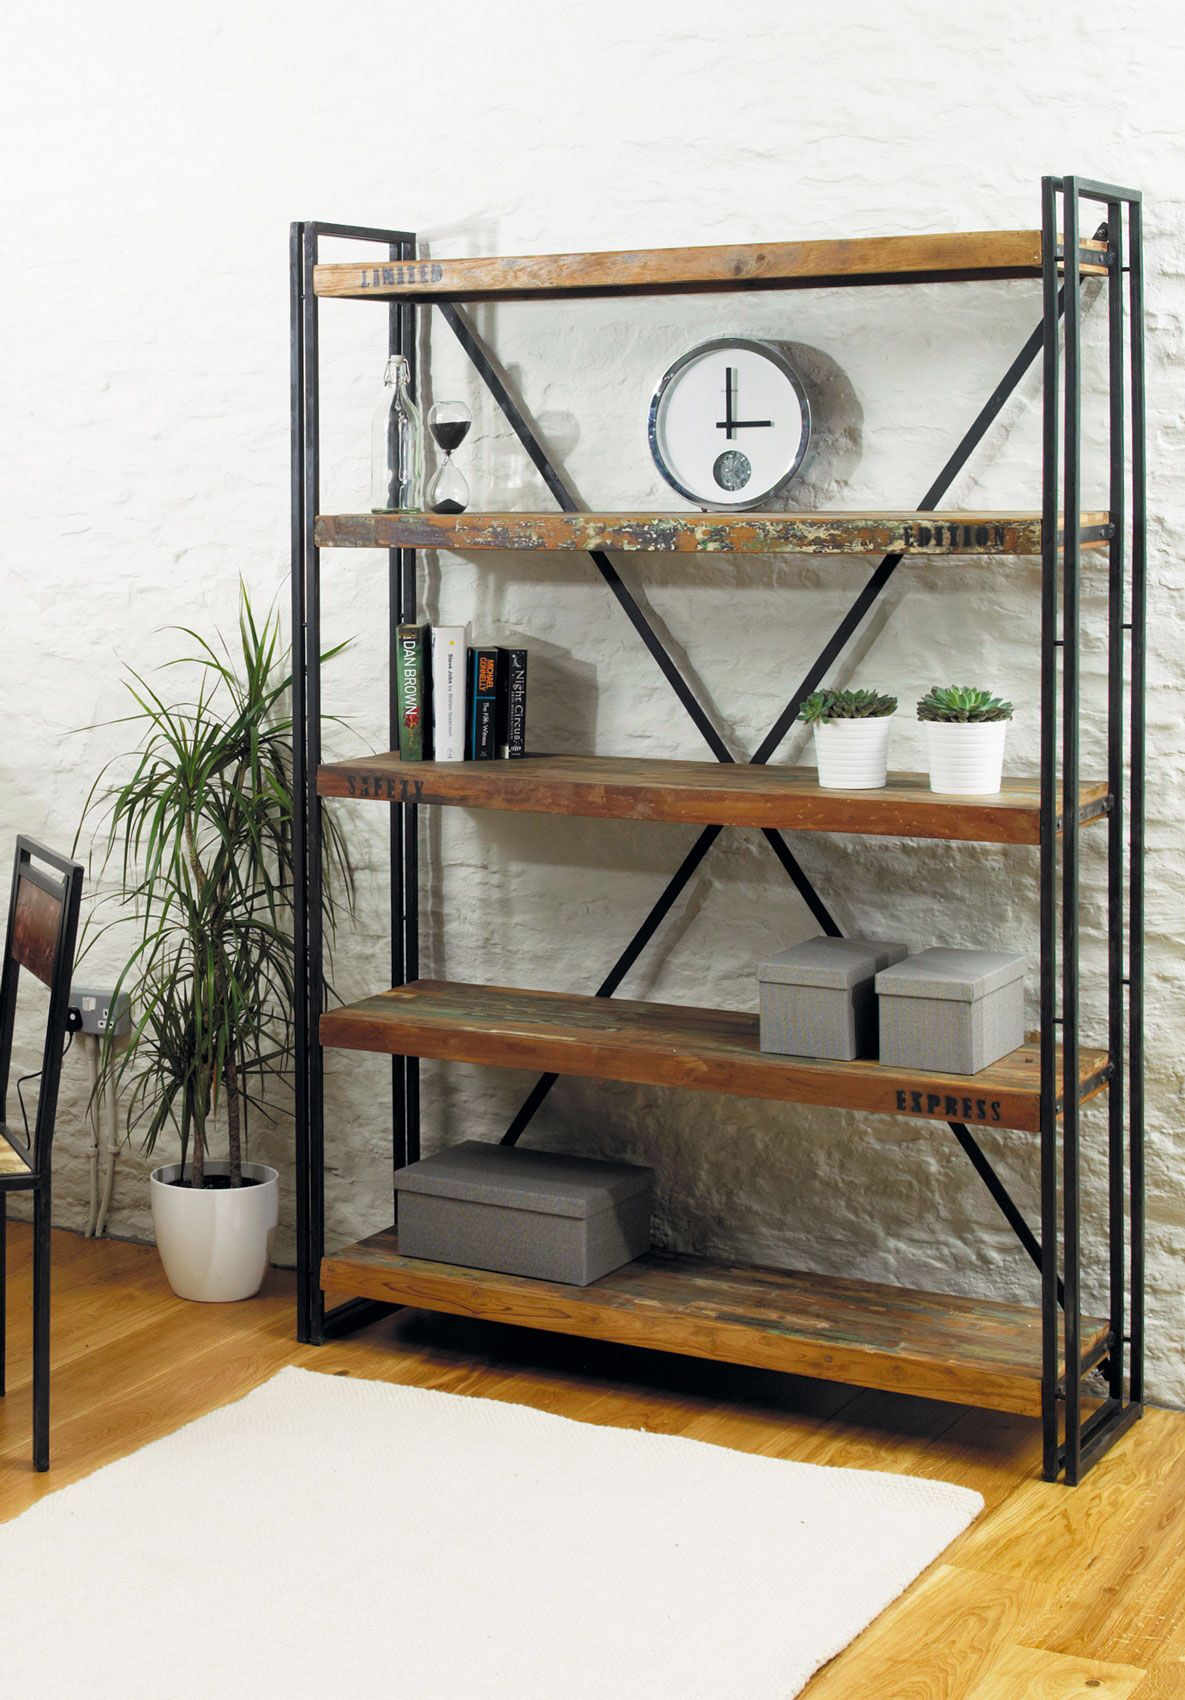 industrial themed furniture. When Looking At The Industrial-themed Interior Design, There Are A Number  Of Building Materials And Furniture Pieces To Take Into Consideration. Industrial Themed B